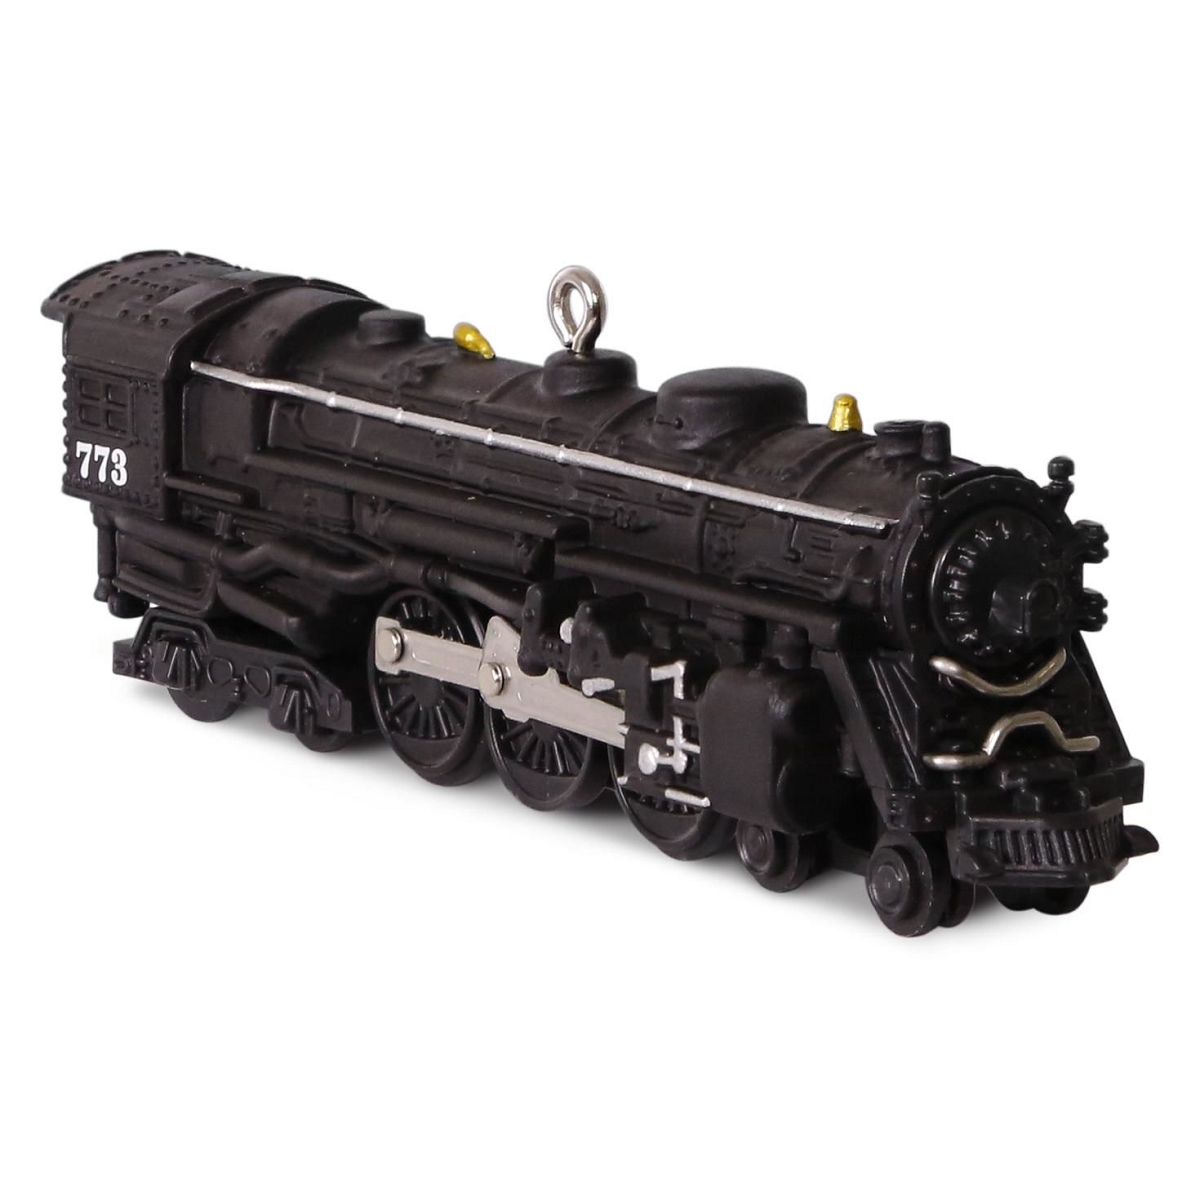 2016 Lionel Train 773 Hudson Steam Locomotive Hallmark